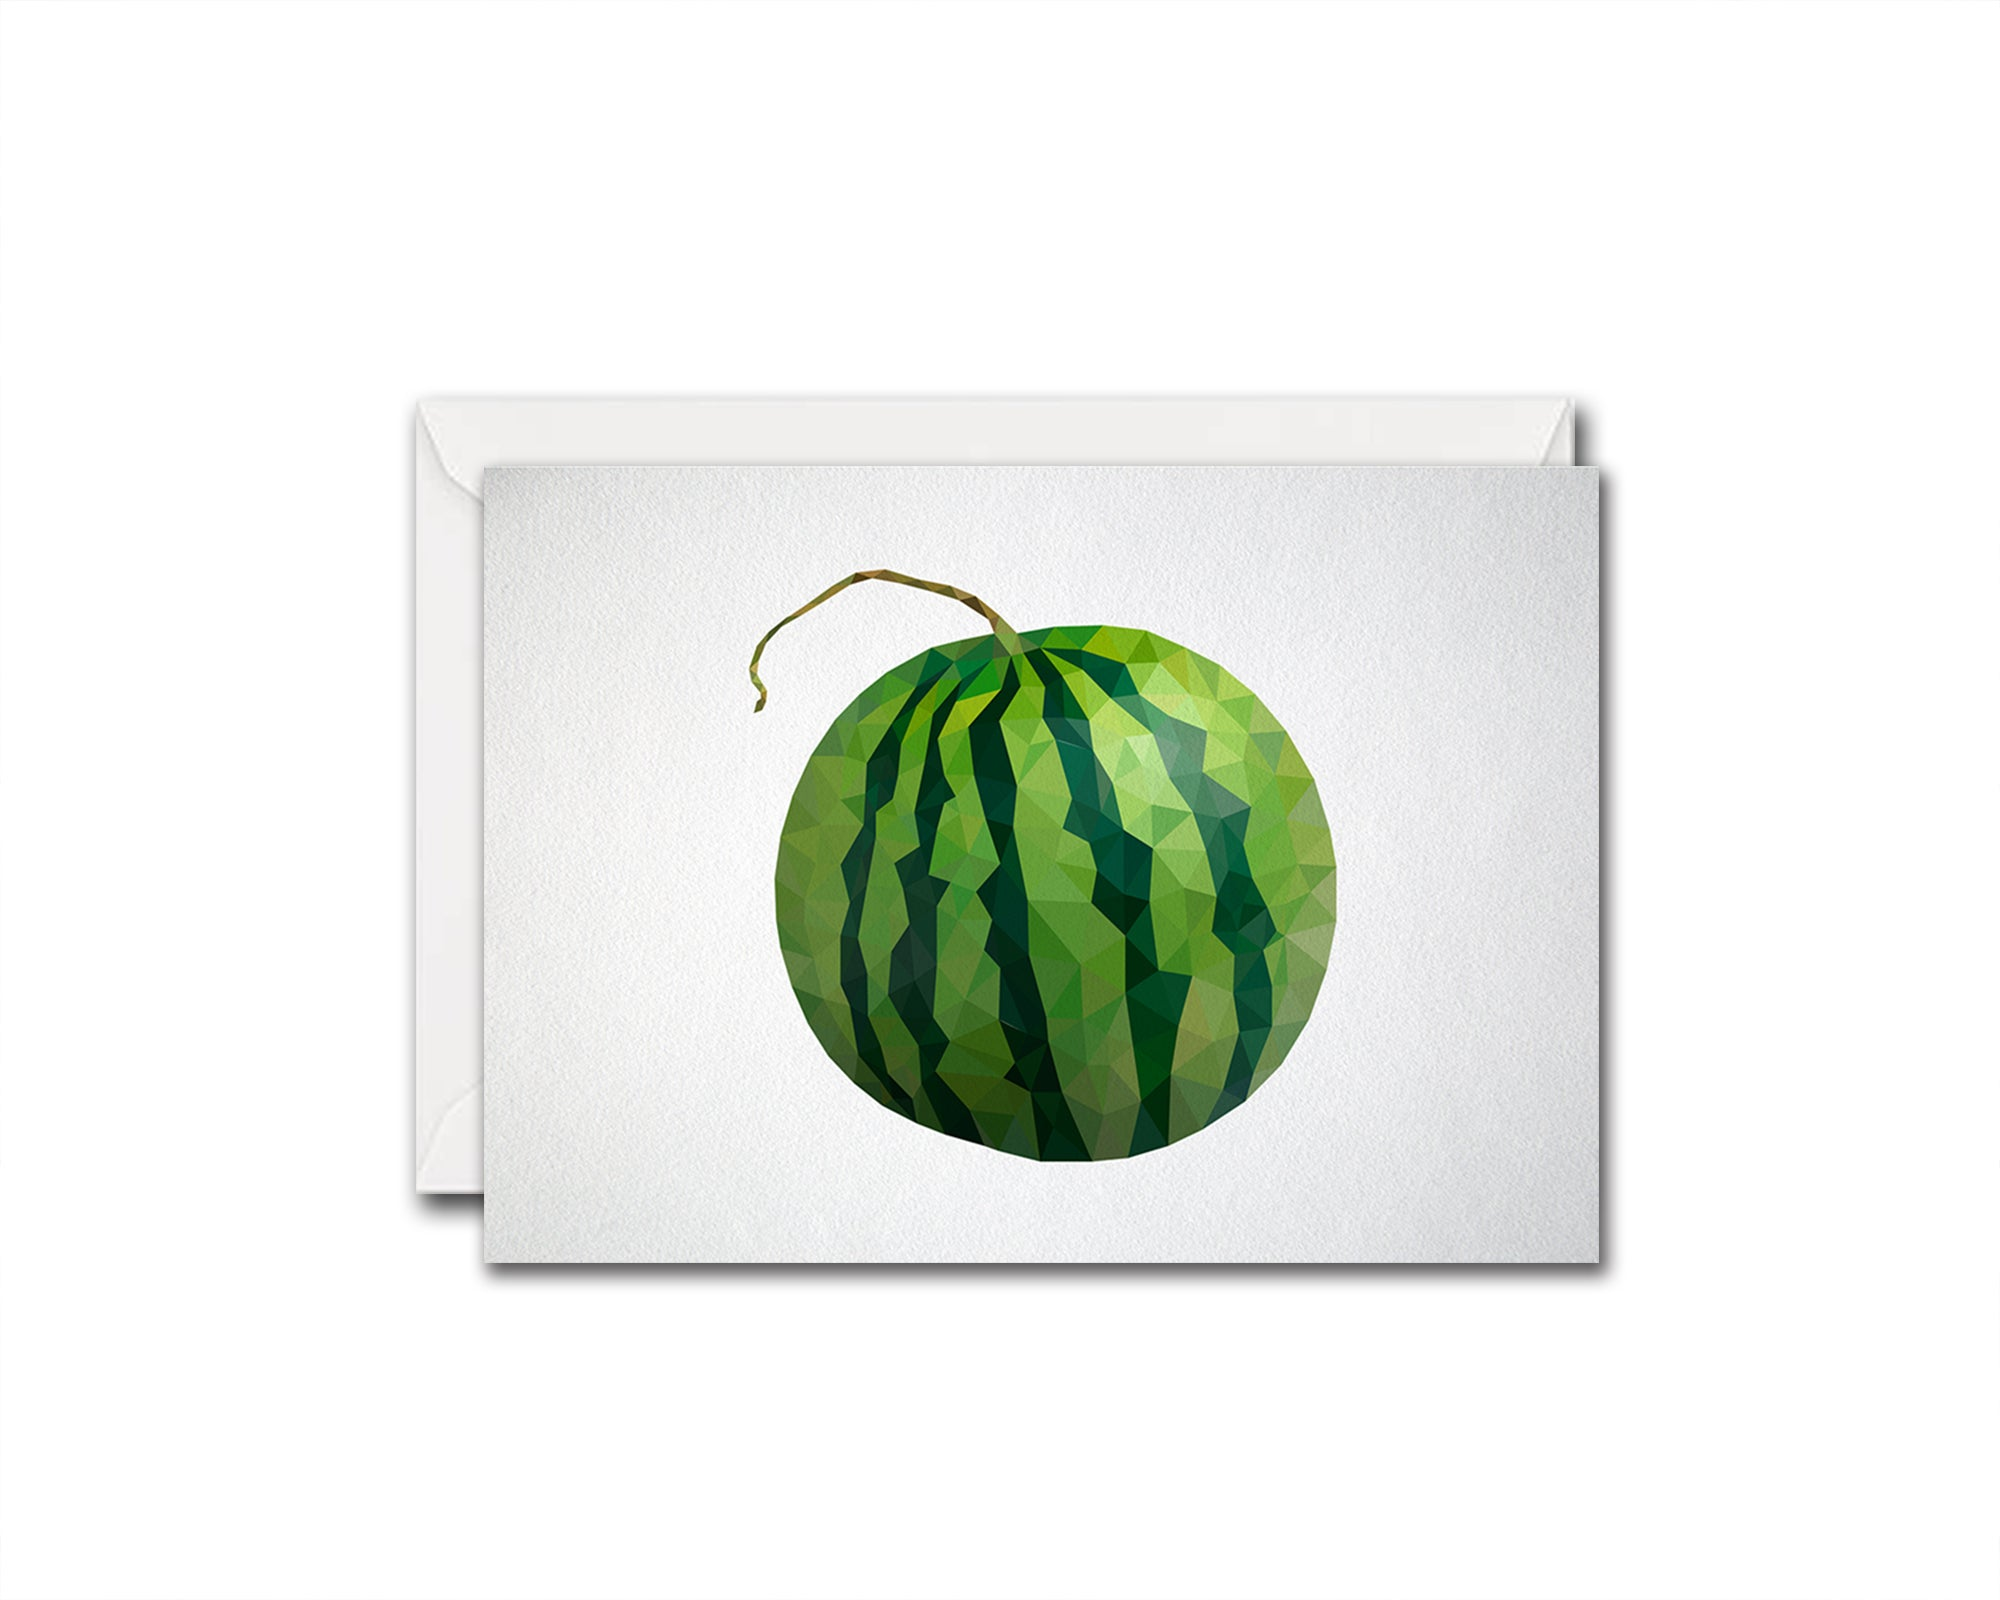 Watermelon Food Customized Gift Cards